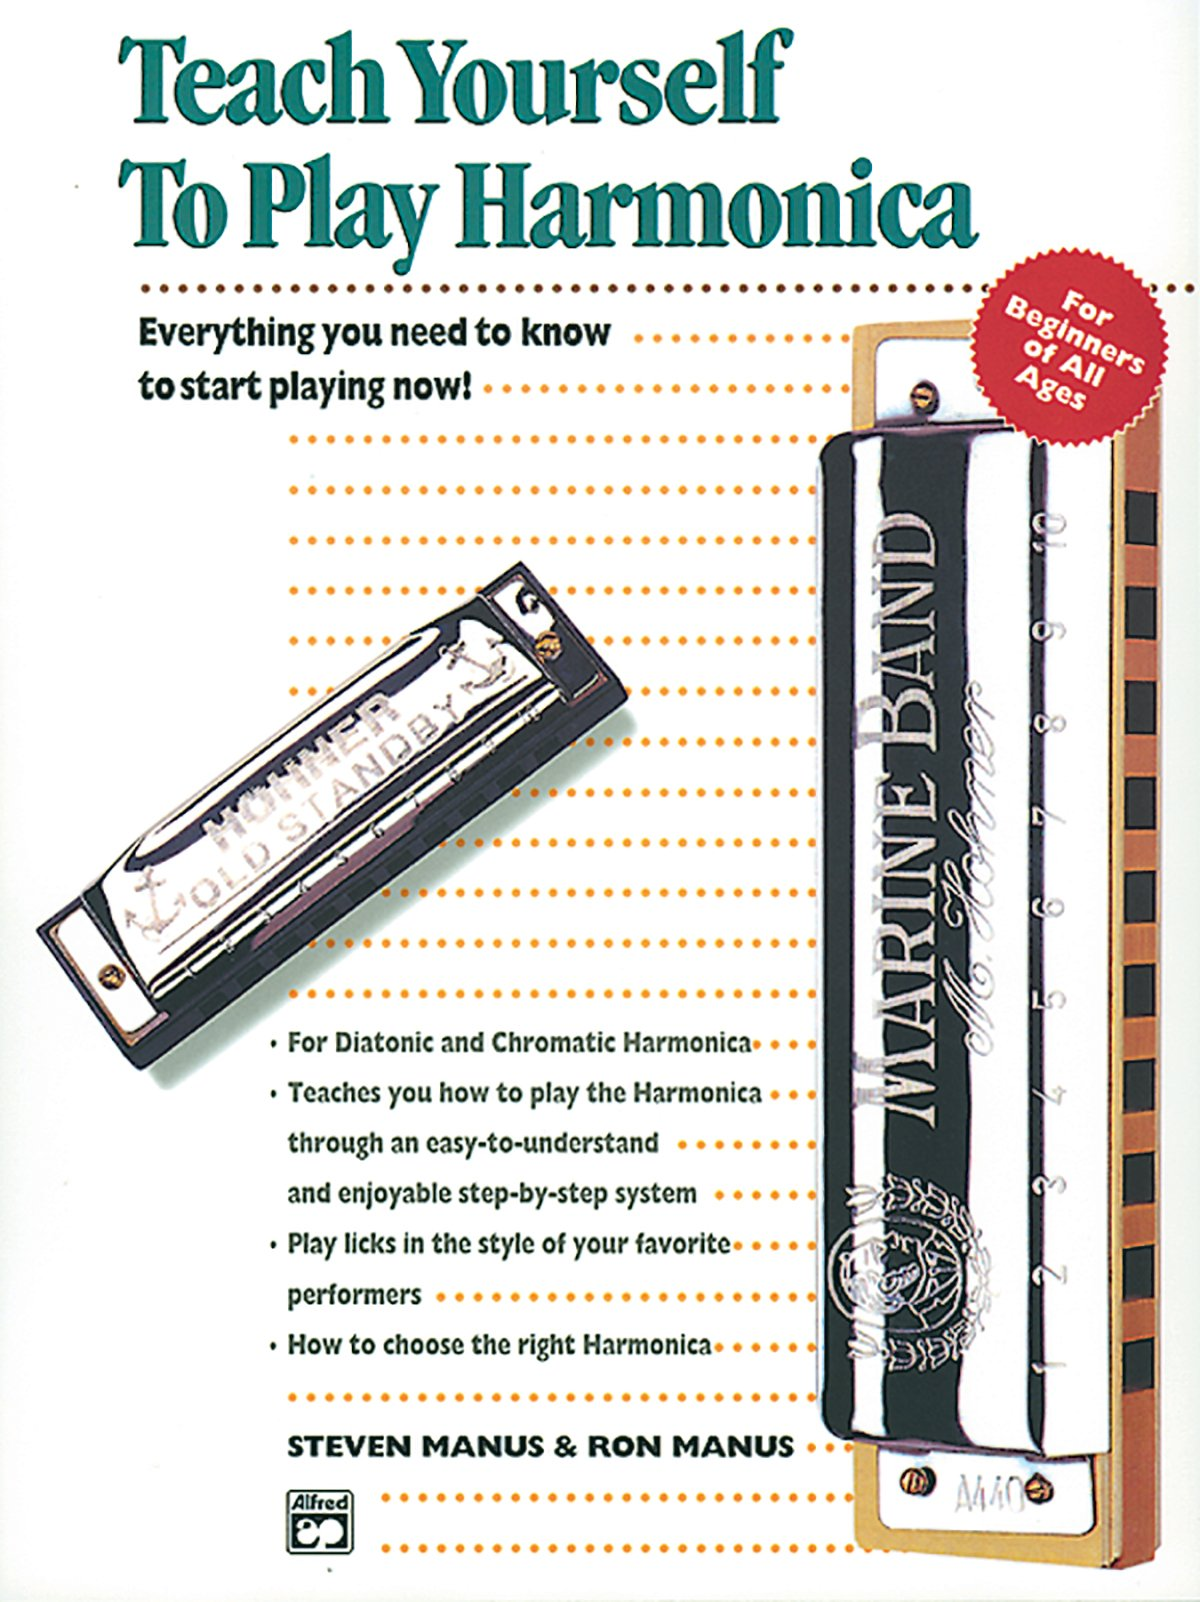 How to play the harmonica 86